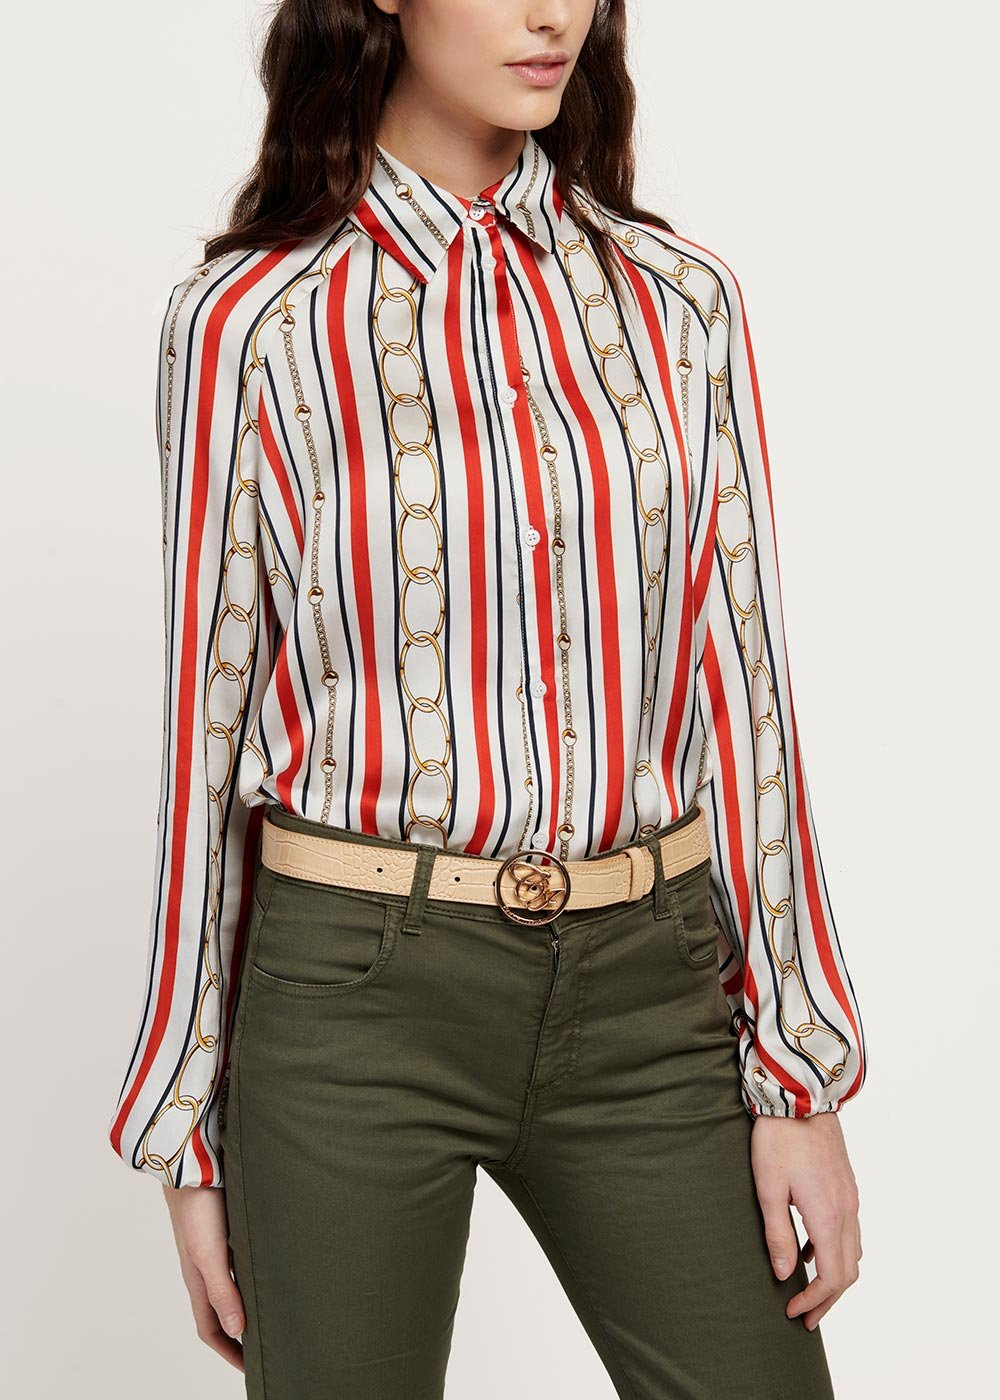 Camicia Cristina fantasia righe e catene - White / Blu / Stripes - Donna